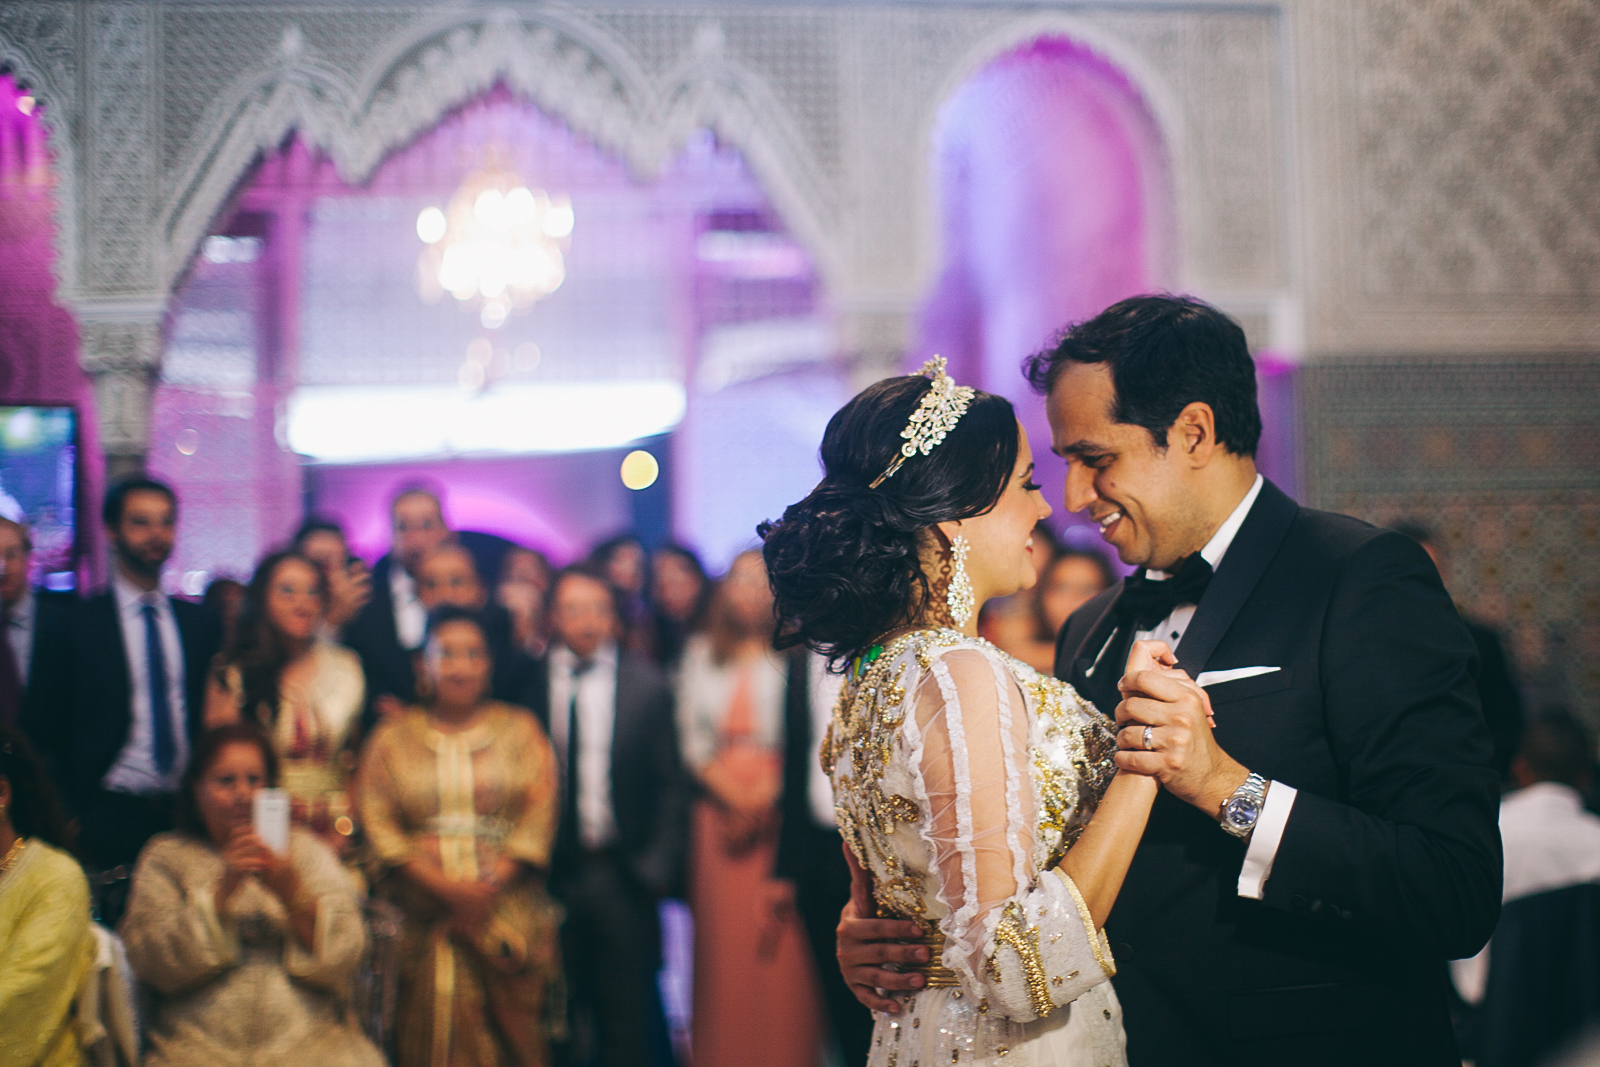 traditional_moroccan_wedding_photographry_casablanca_morocco_houda_vivek_ebony_siovhan_bokeh_photography_167.jpg